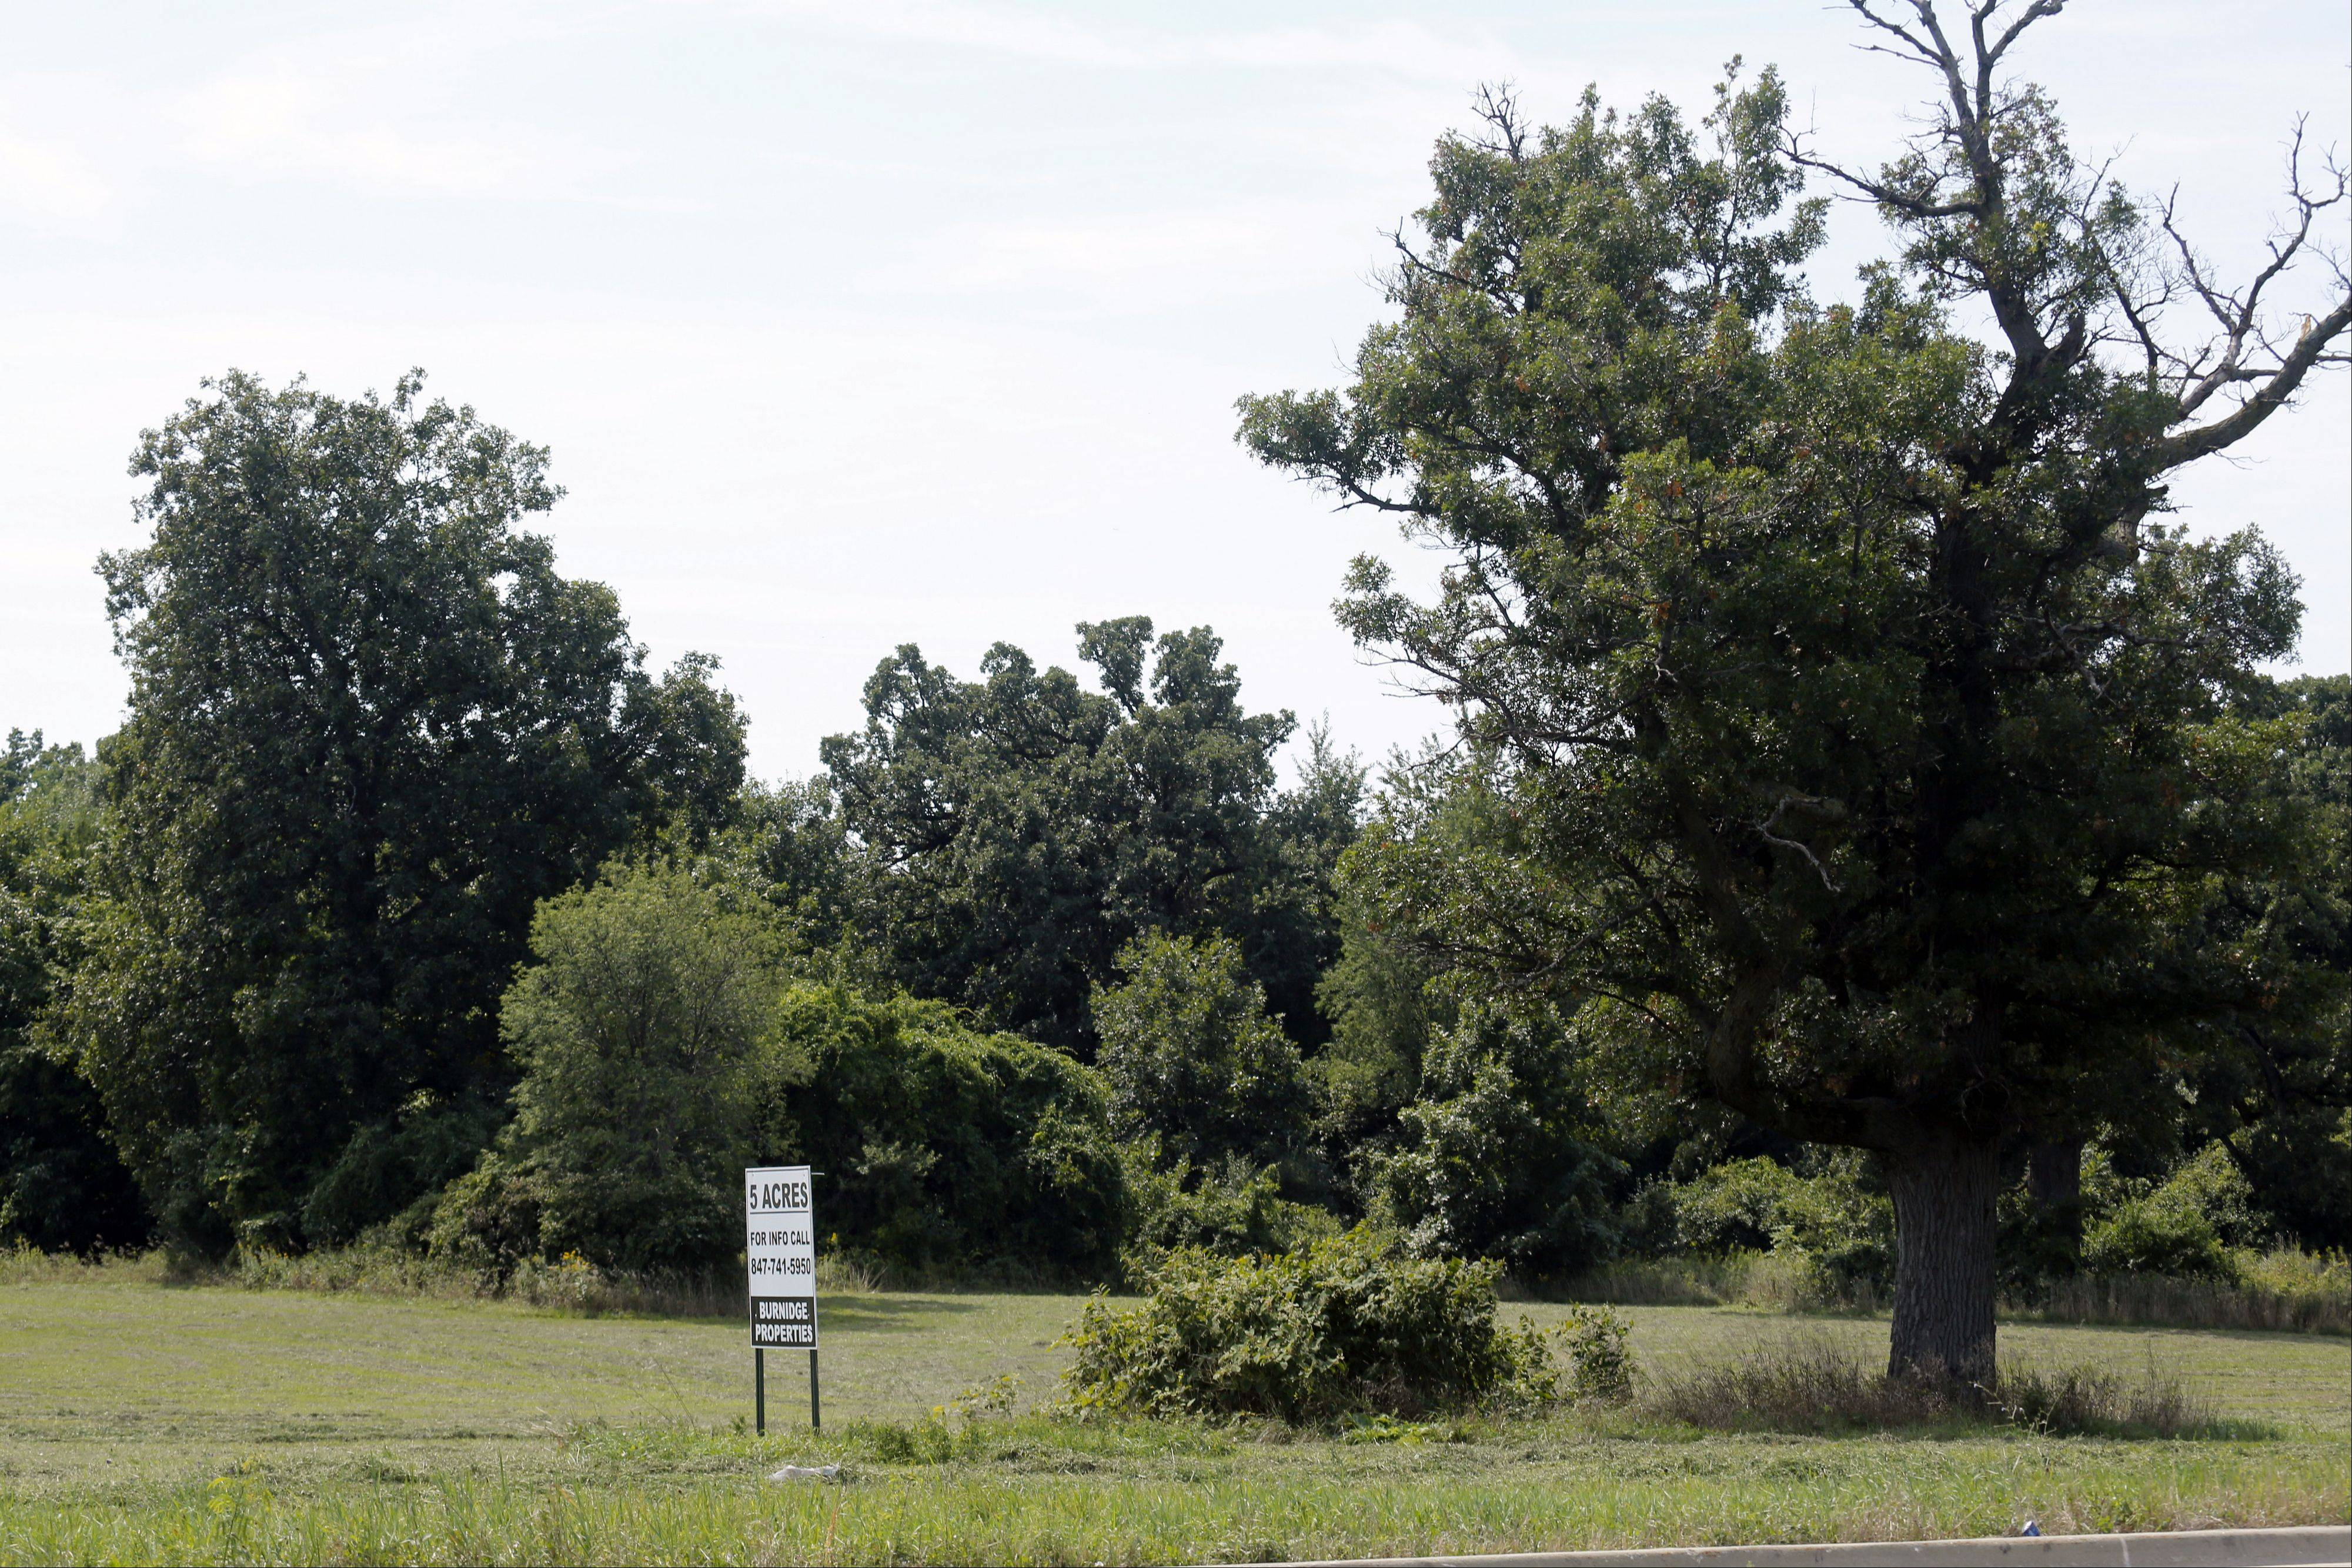 Plans for a Subaru auto dealership at 1500 Randall Road in Elgin include saving a 200-year-old white oak tree.